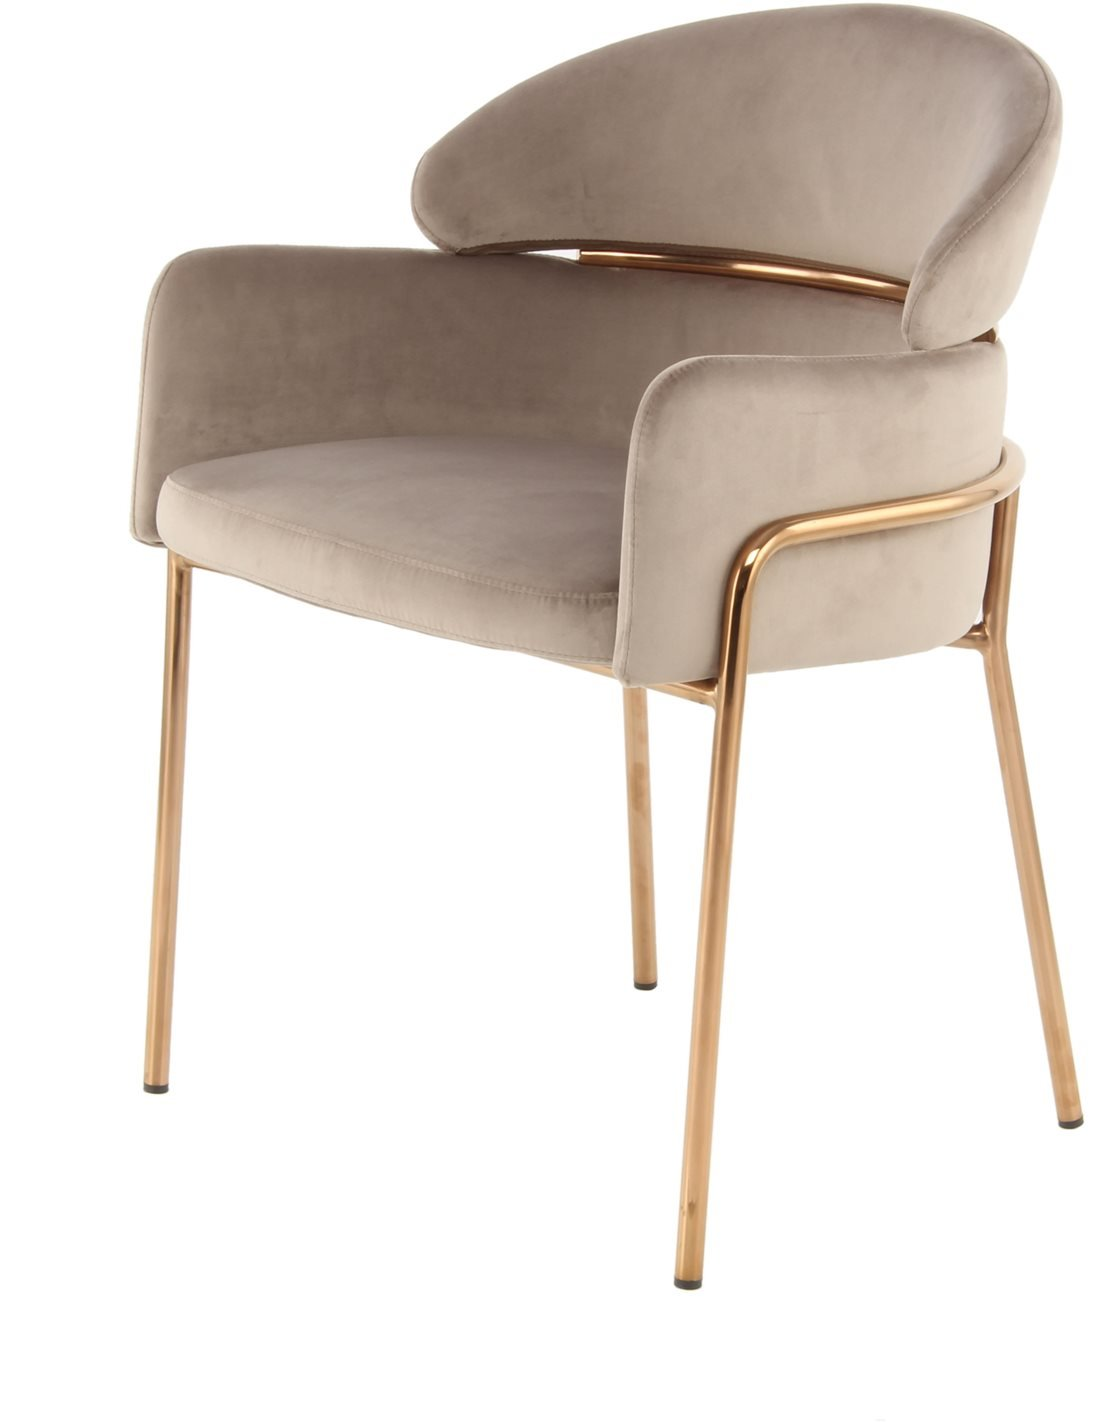 Fauteuil Corey 125 | Kayoom | Taupe, or rose